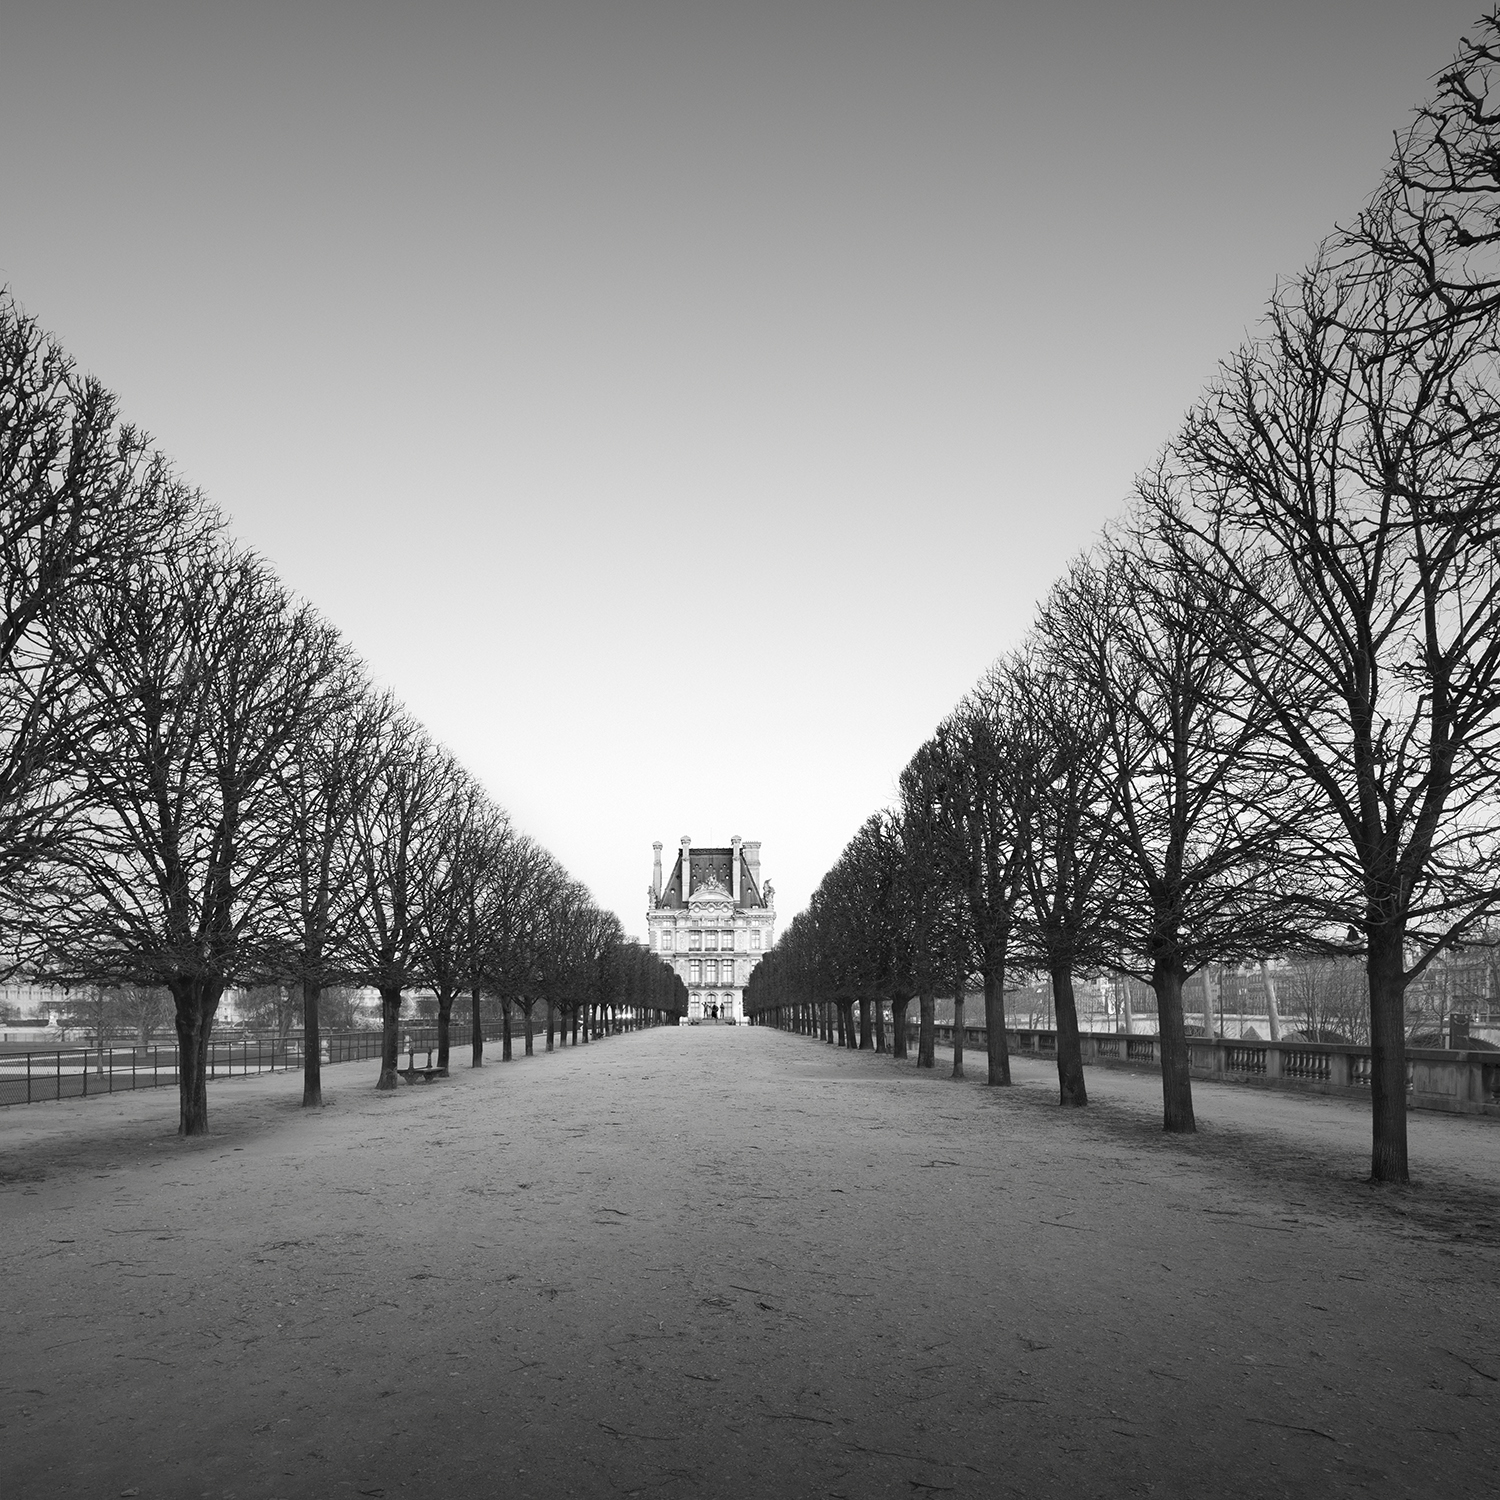 tuileries - paris, france, 2016    PRINT: £145 | FRAMED: £170    AWARDS: HONOURABLE MENTION - INTERNATIONAL PHOTOGRAPHY AWARDS